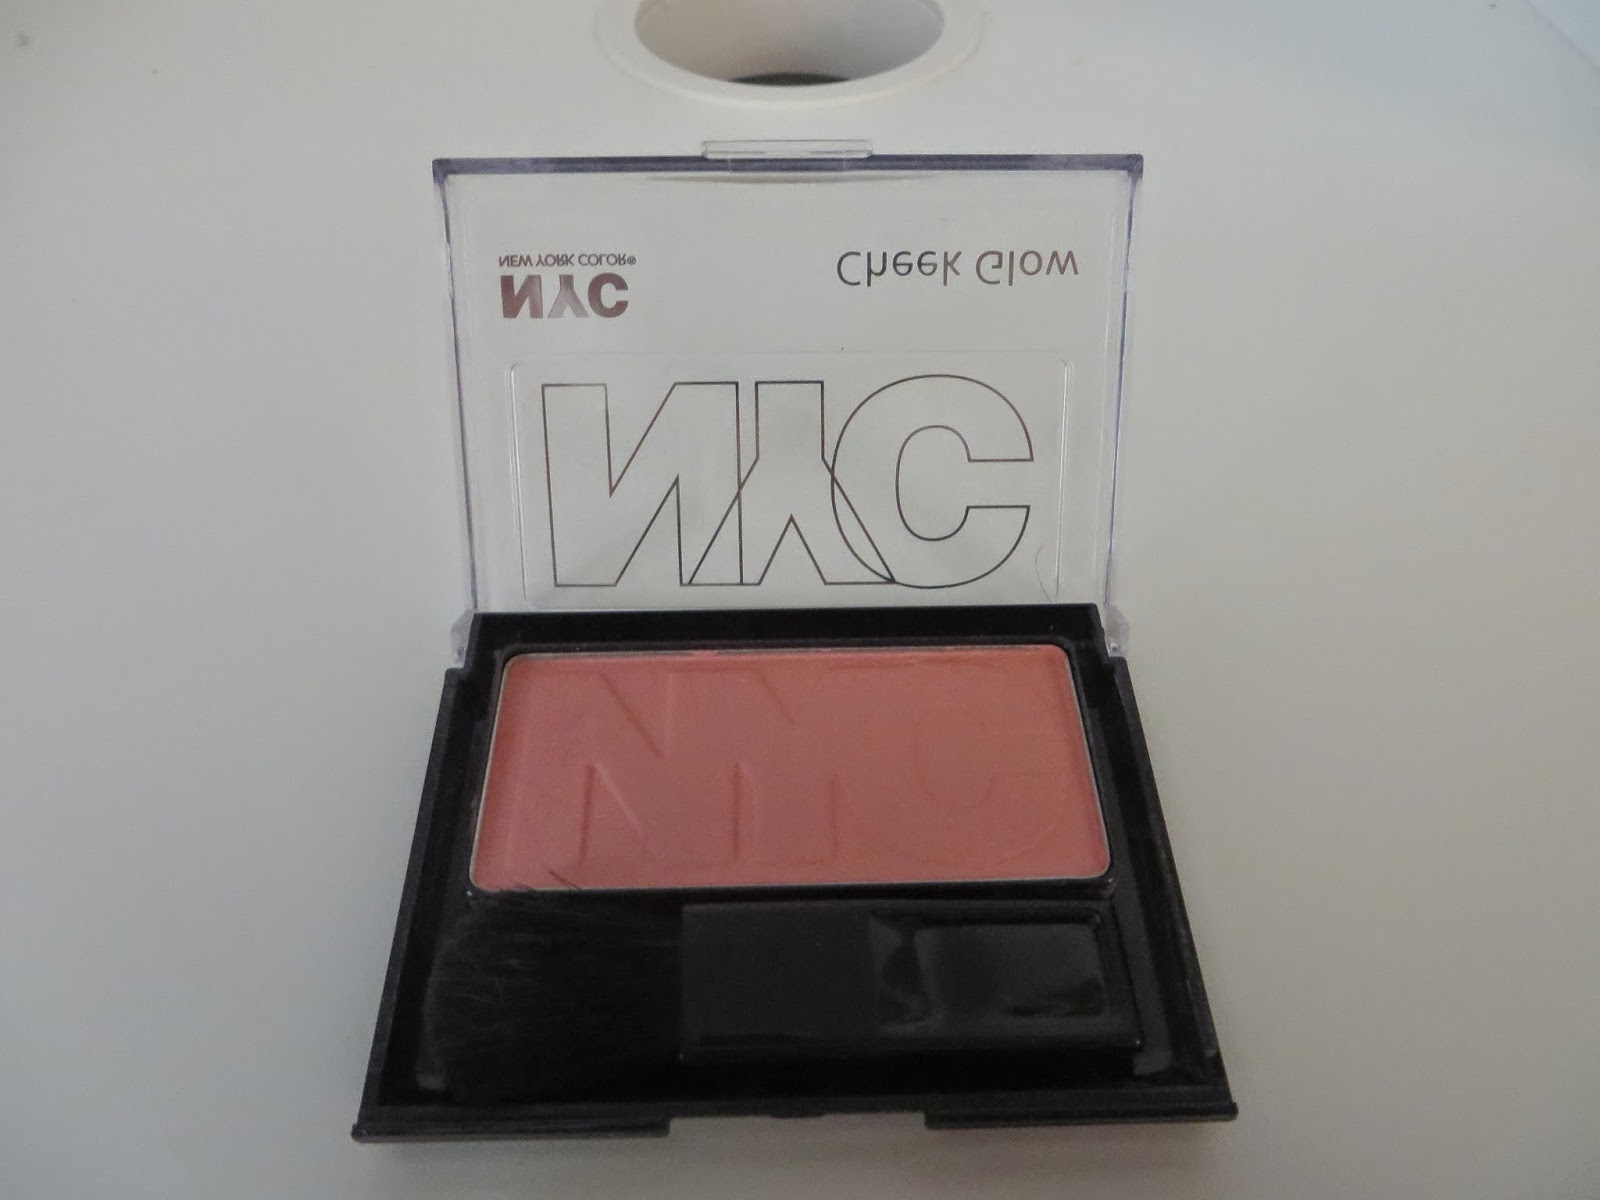 NYC Cheek Glow Powder Blush in 652 West Side Wine